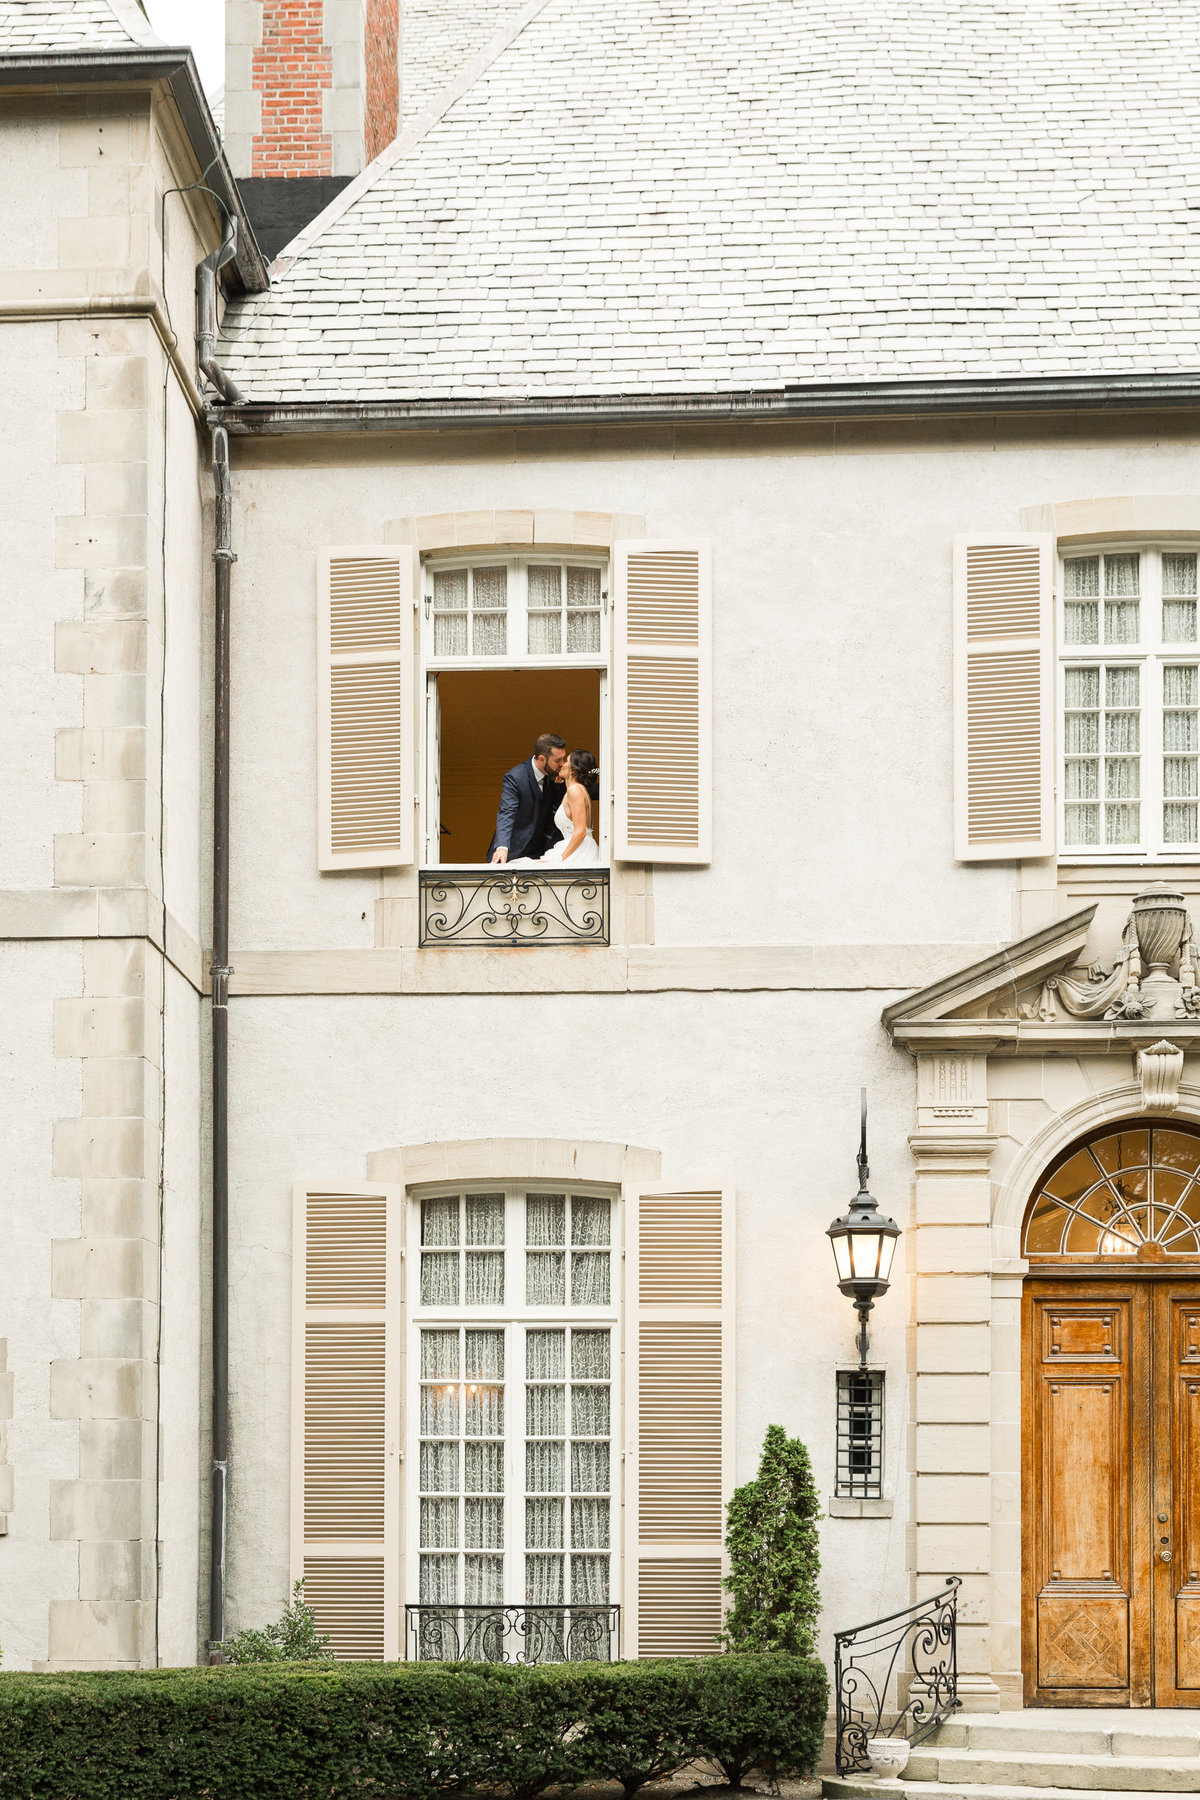 Bride and groom share a kiss on the balcony at the French chateau Glen Manor House